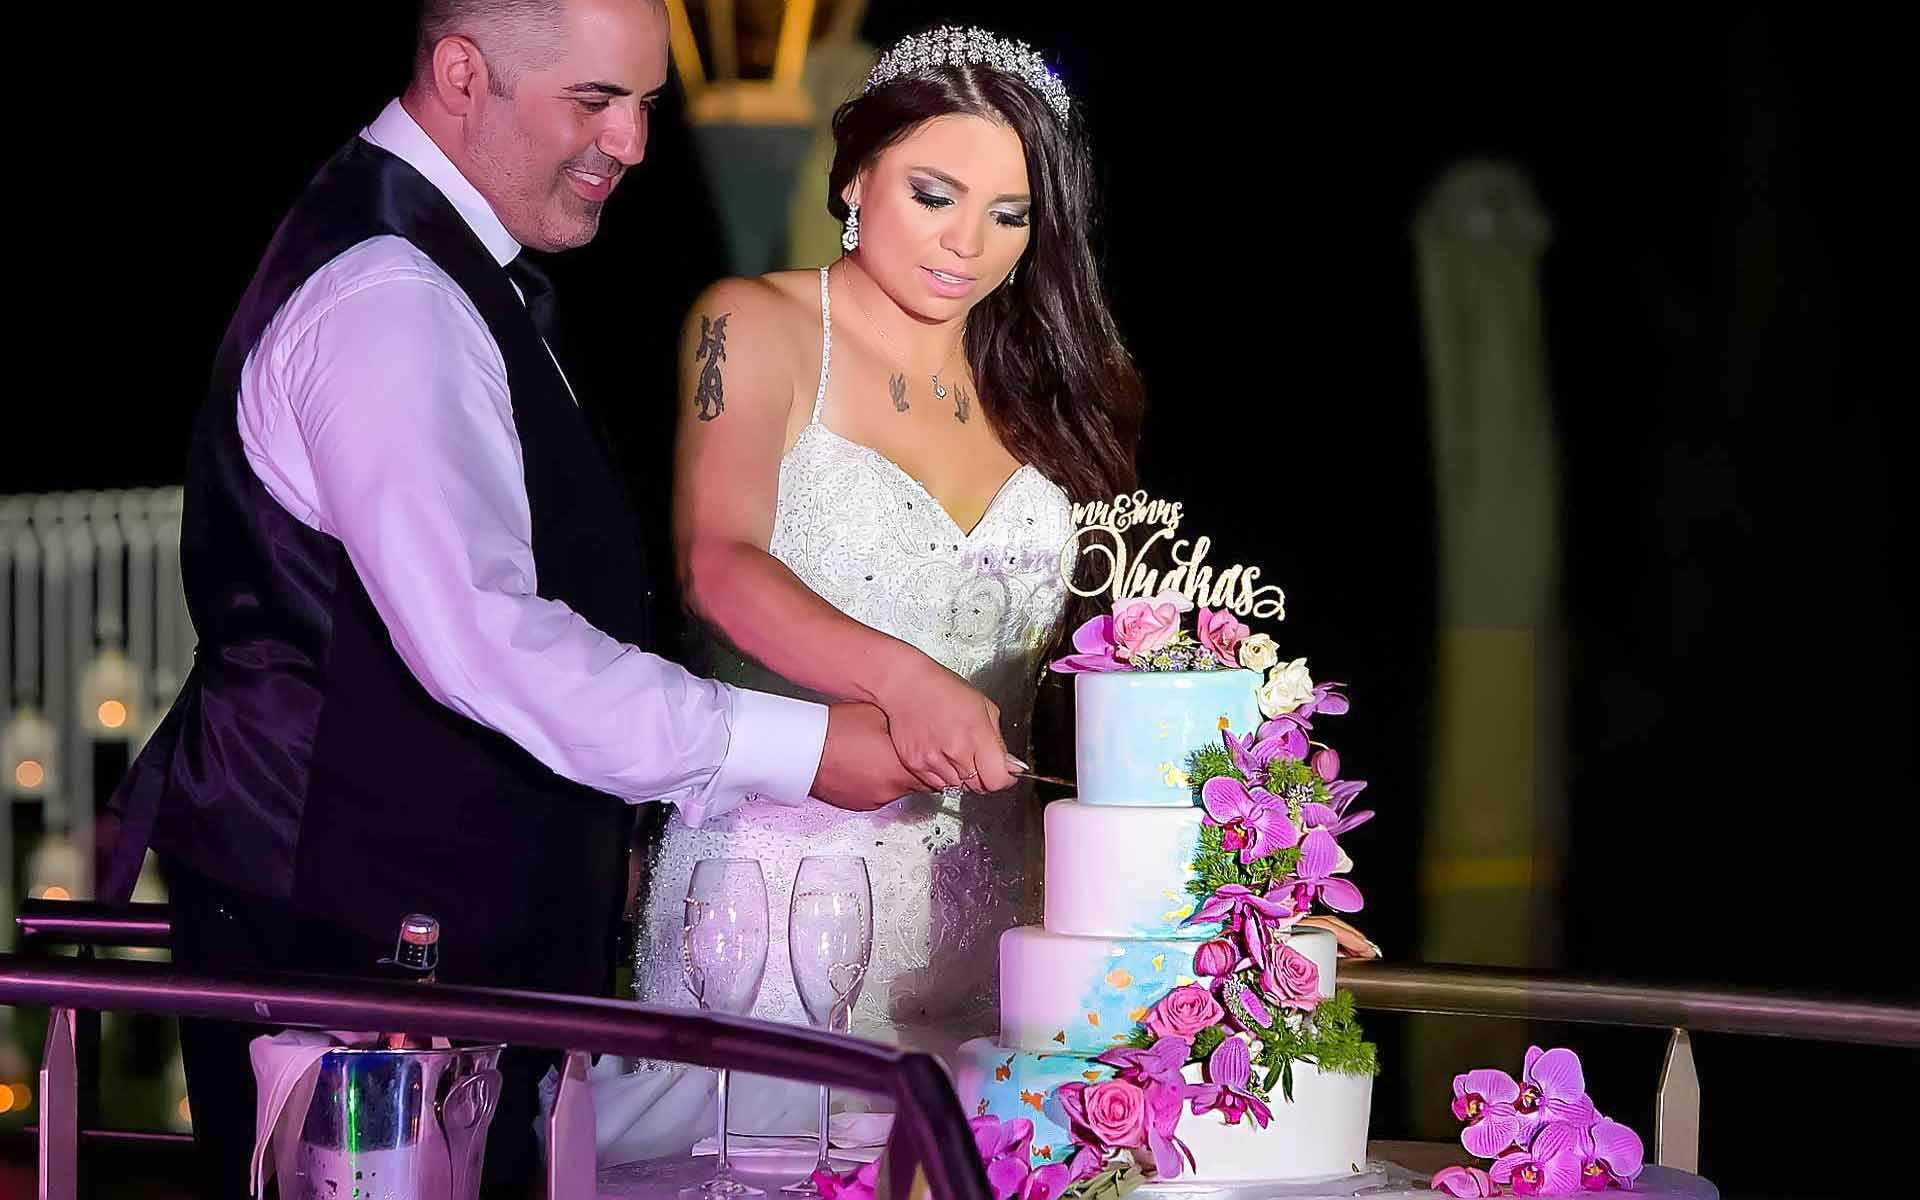 Cutting-The-Cake-Is-A-Romantic-Symbolic-Moment-On-Every-Wedding-Day